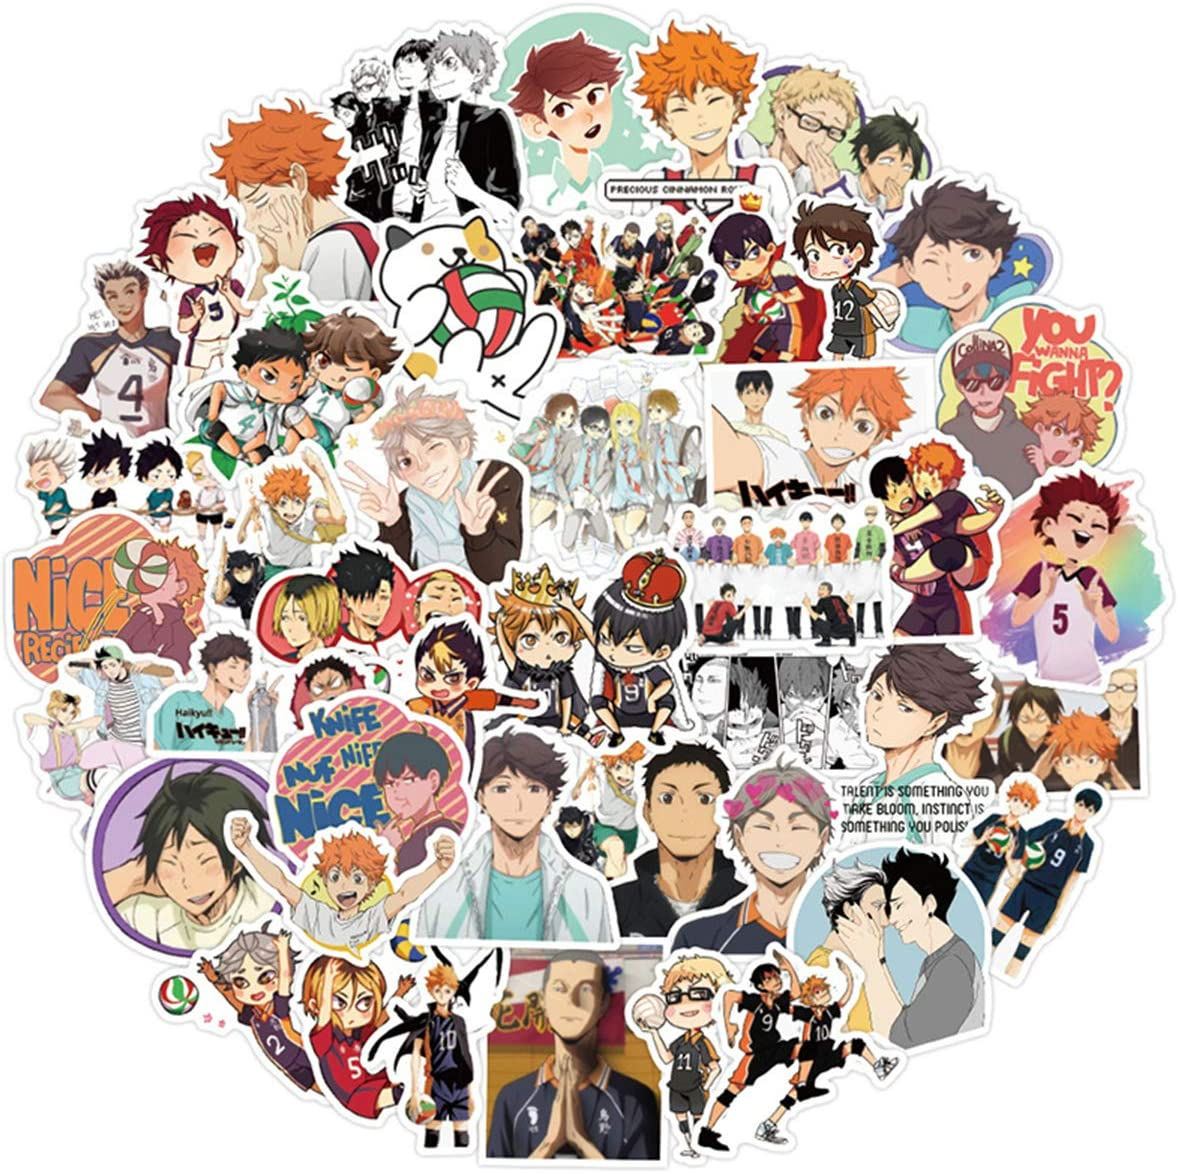 100pcs Haikyuu!! Anime Stickers Aesthetic Trendy Waterproof Stickers for Laptop Hydro Flask, Water Bottle Stickers Suitable for Kids Girls Teens Stickers (Haikyuu!!)